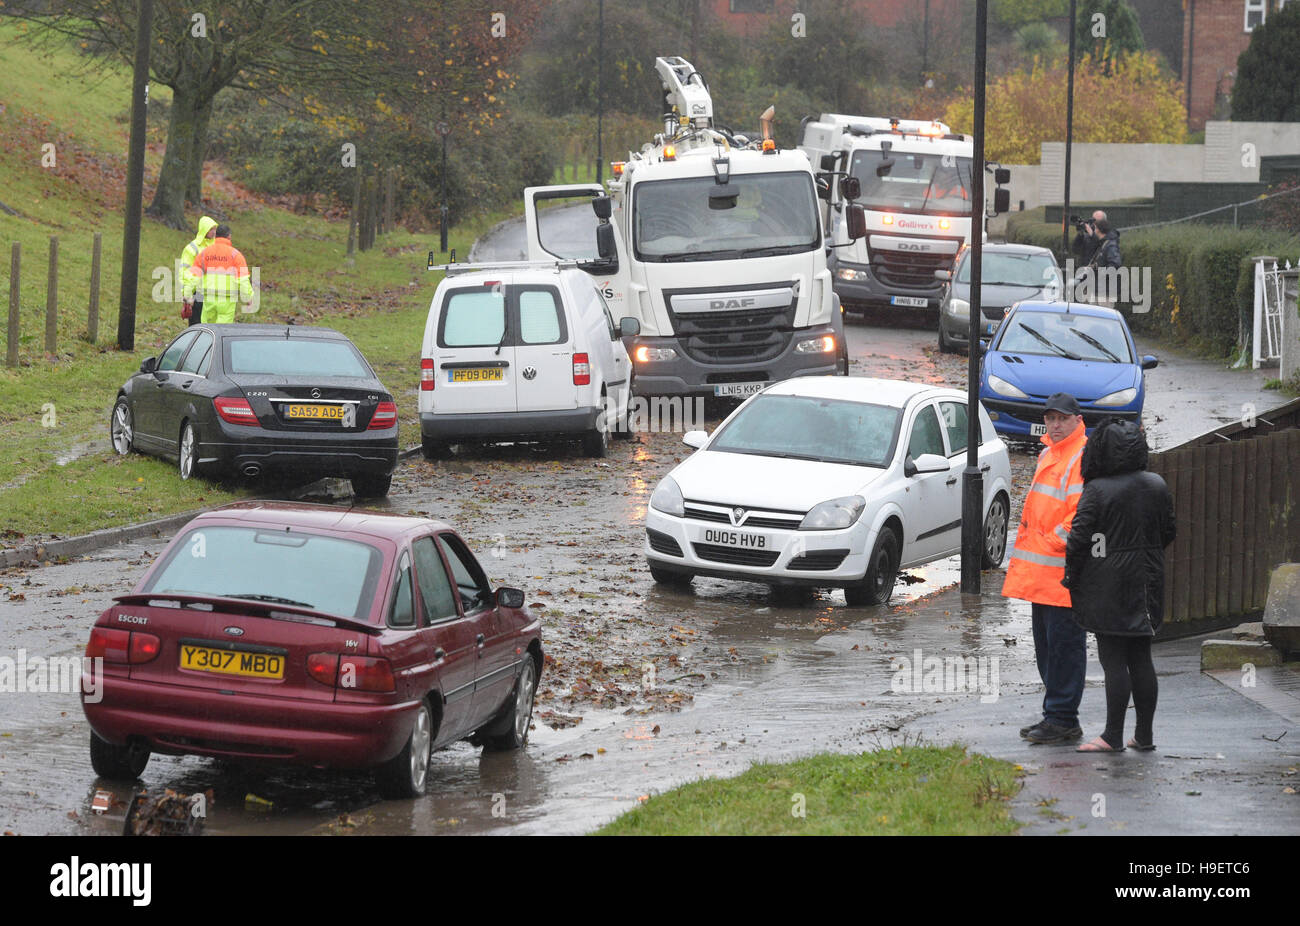 The clean up begins in Whitchurch Lane, Bristol, after heavy rain  overnight, as